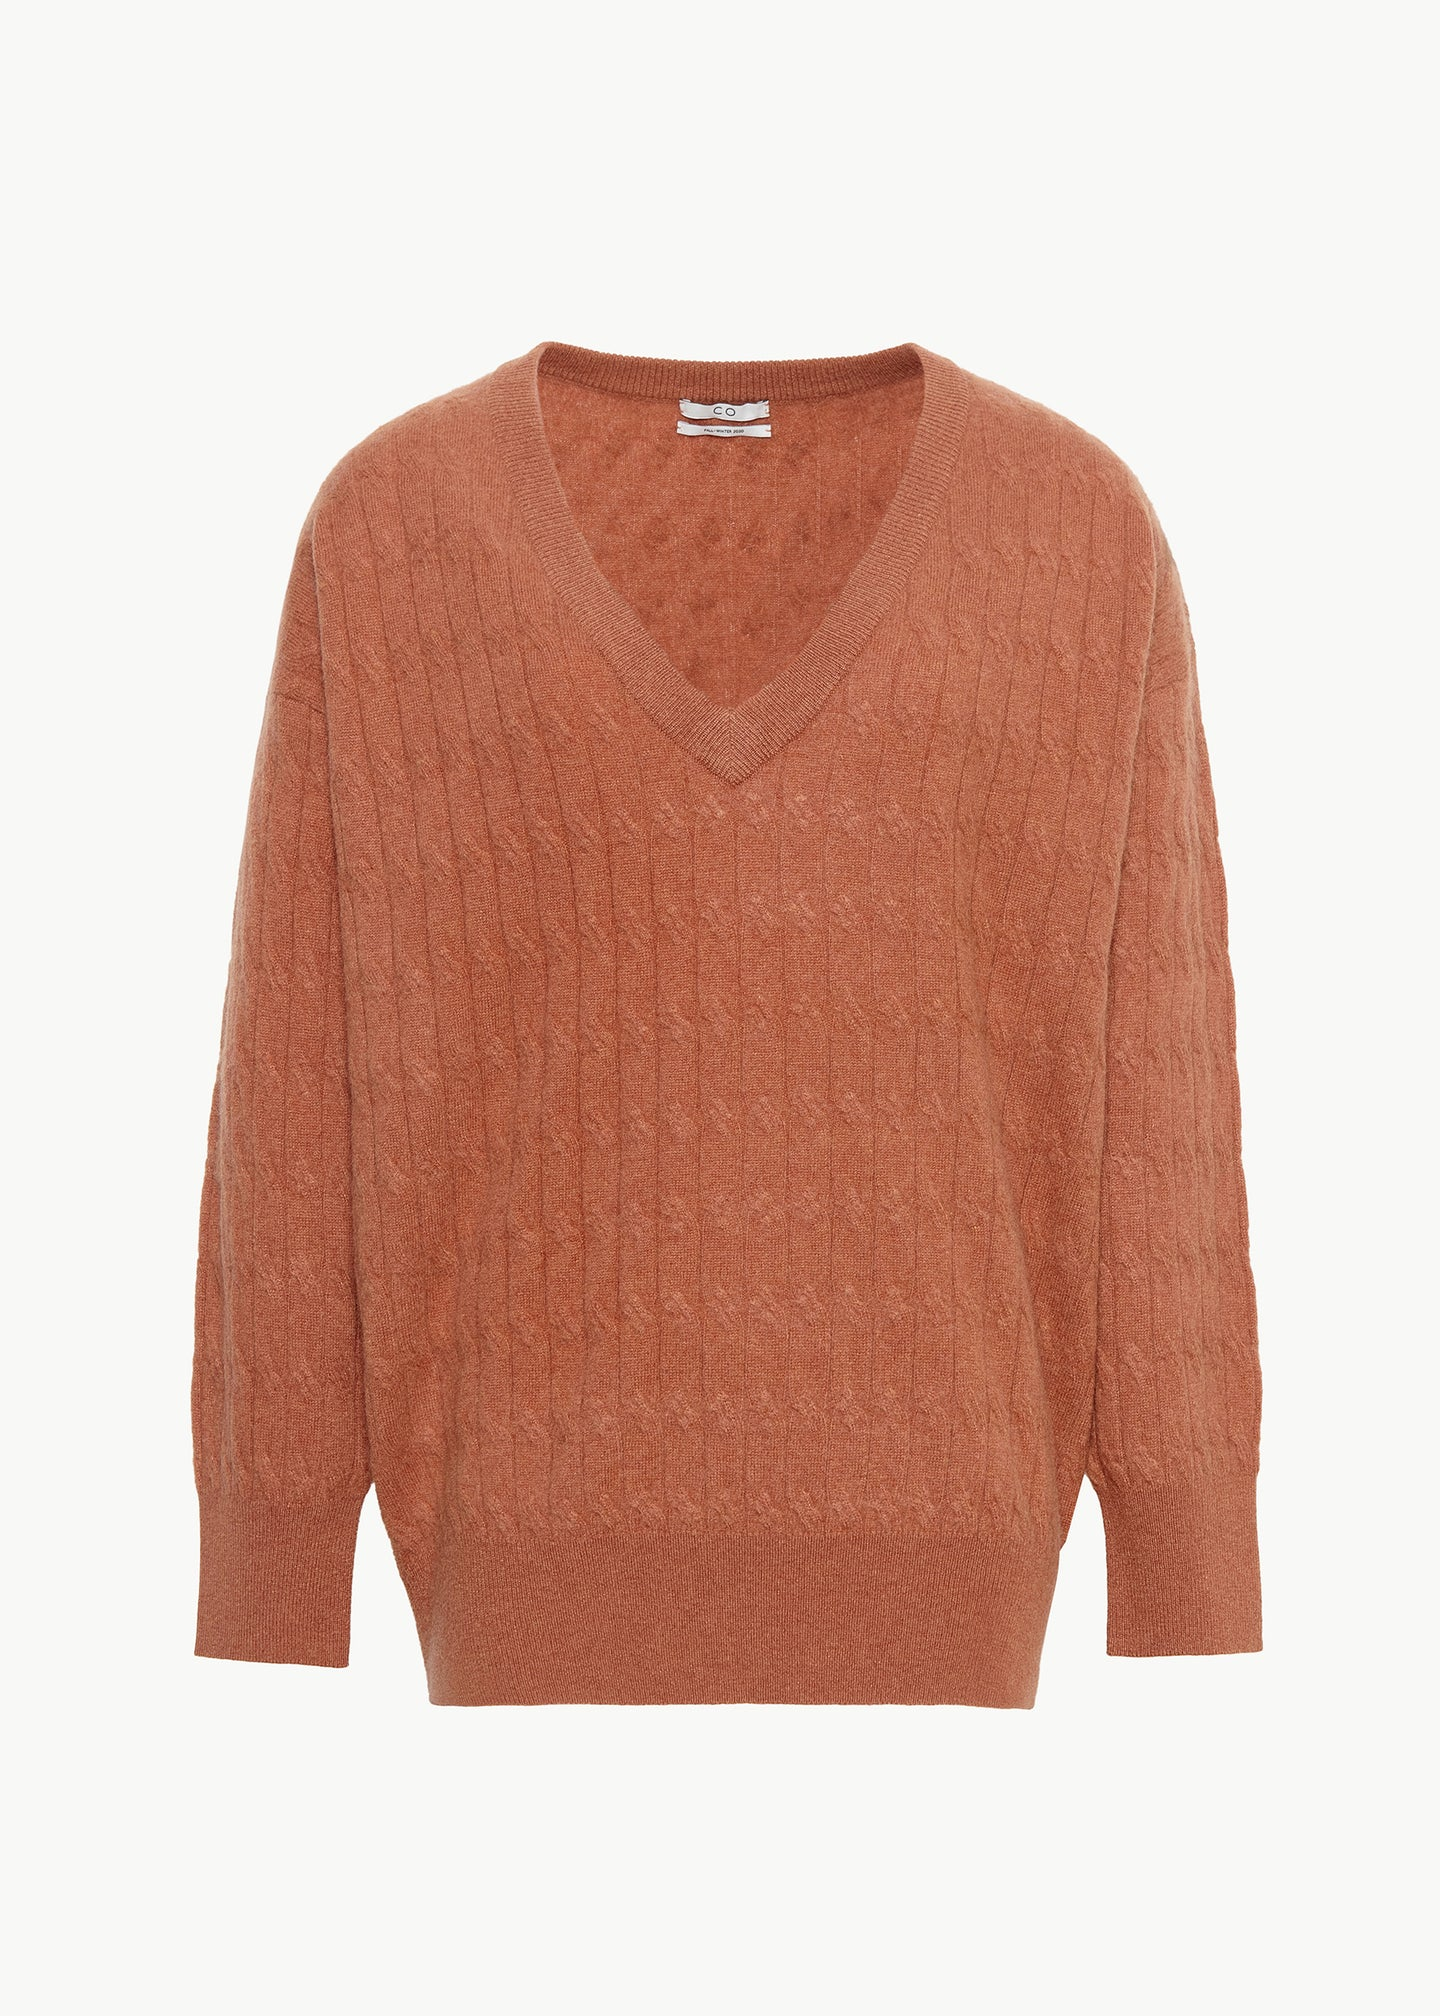 Cable Knit V Neck Sweater in Cashmere - Copper - CO